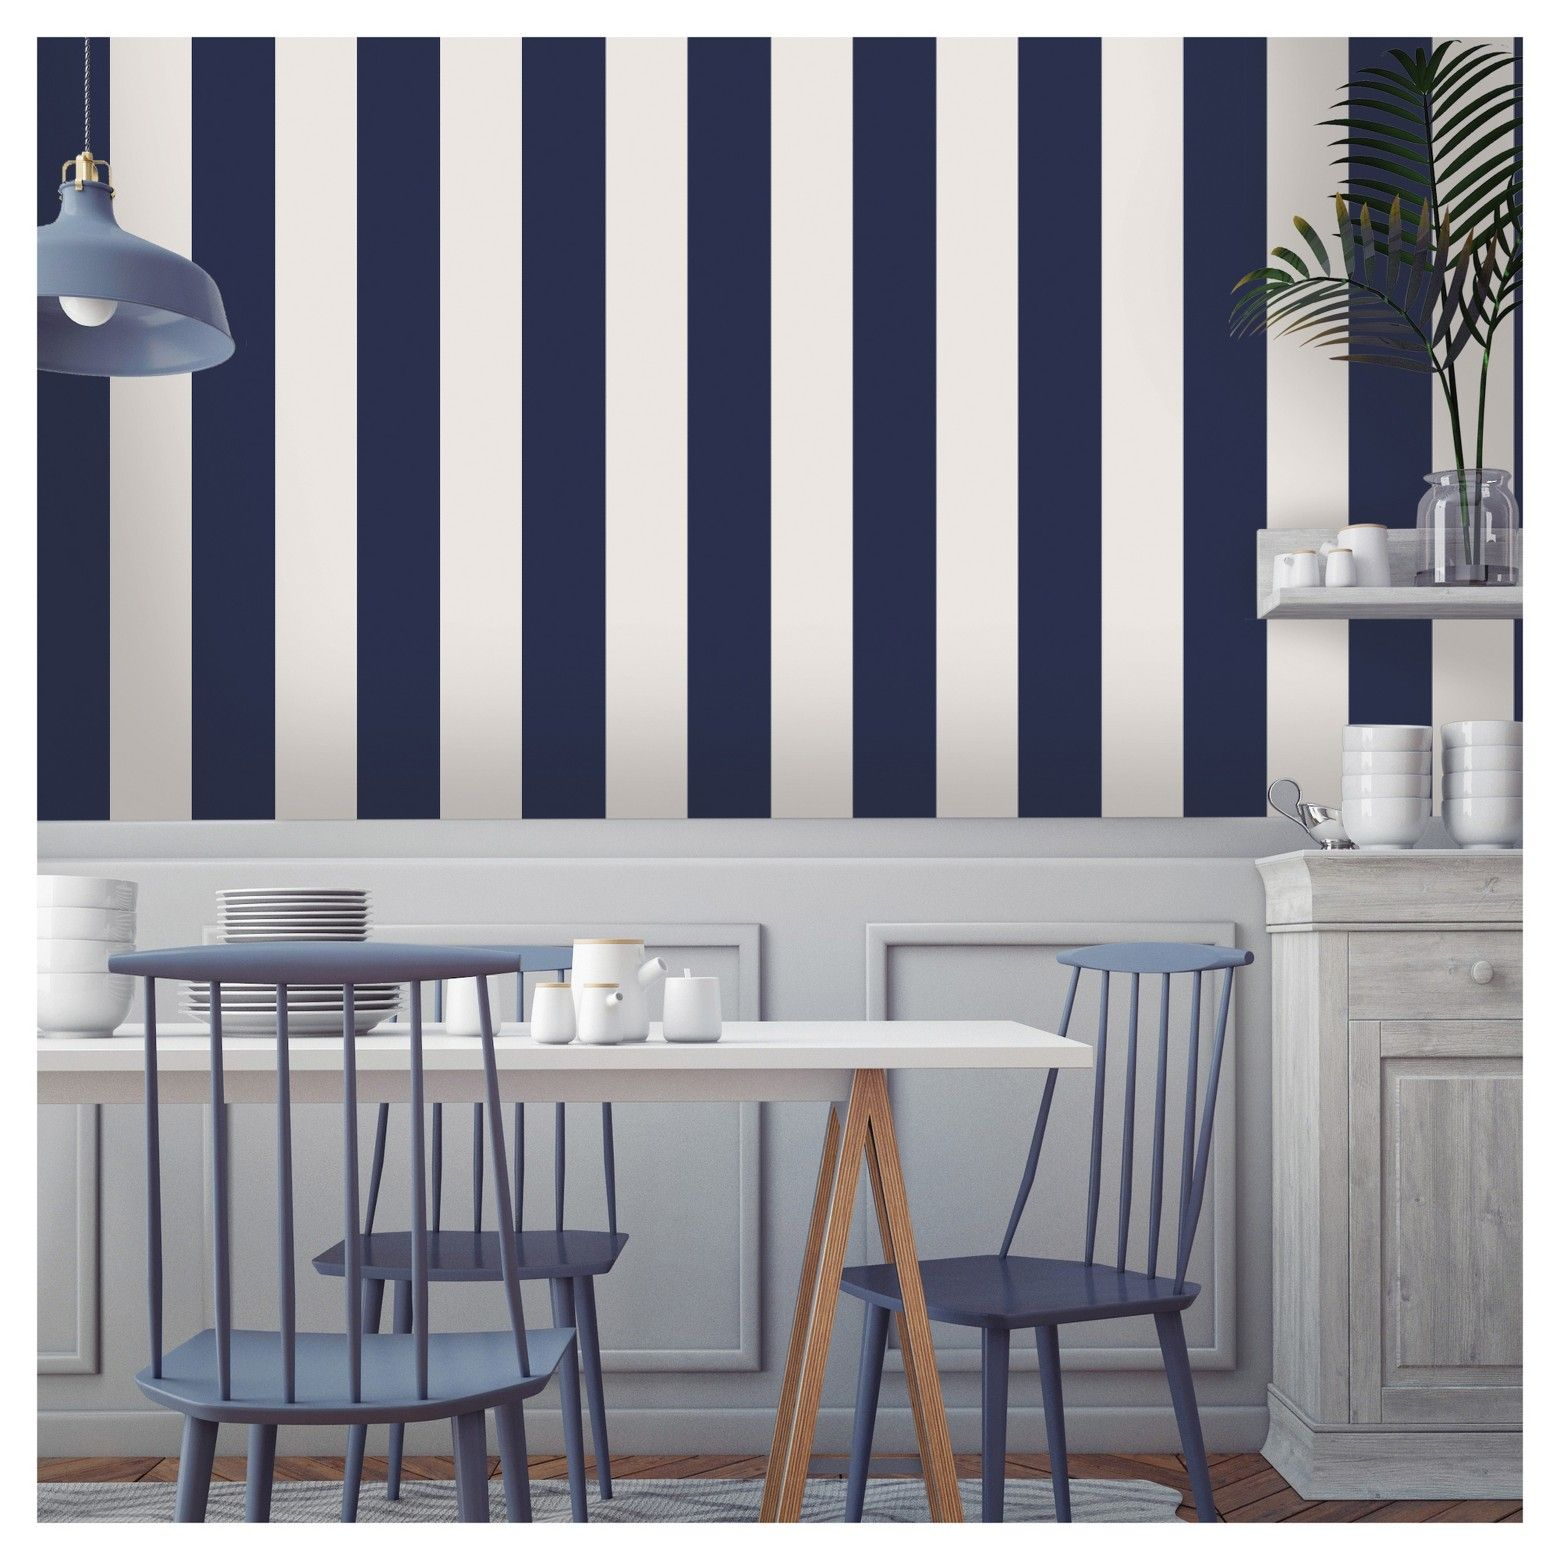 Kitchen wallpaper stripes - Tempaper Self Adhesive Removable Wallpaper Stripes Navy